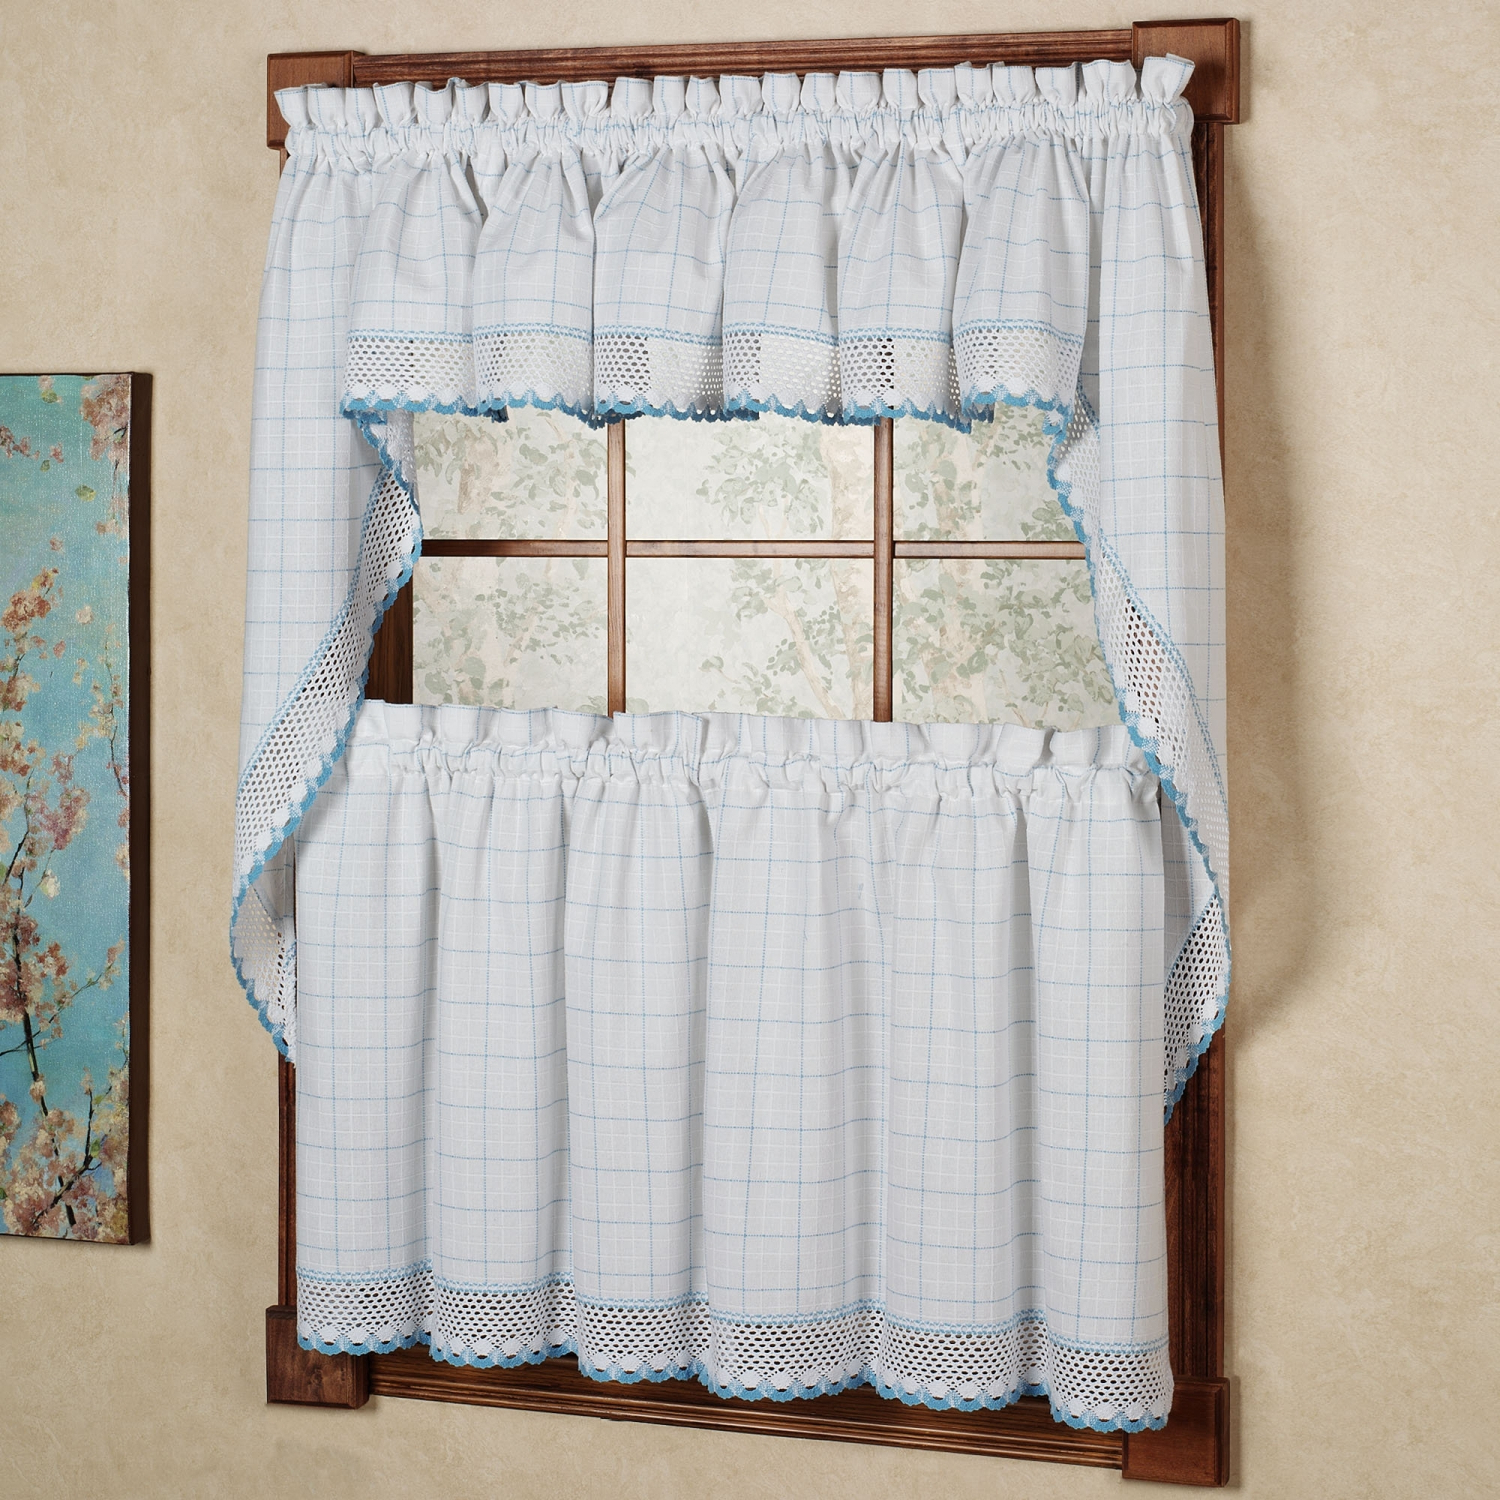 Most Up To Date White Knit Lace Bird Motif Window Curtain Tiers For Details About Adirondack Cotton Kitchen Window Curtains – White/blue – Tiers, Valance Or Swag (View 13 of 20)